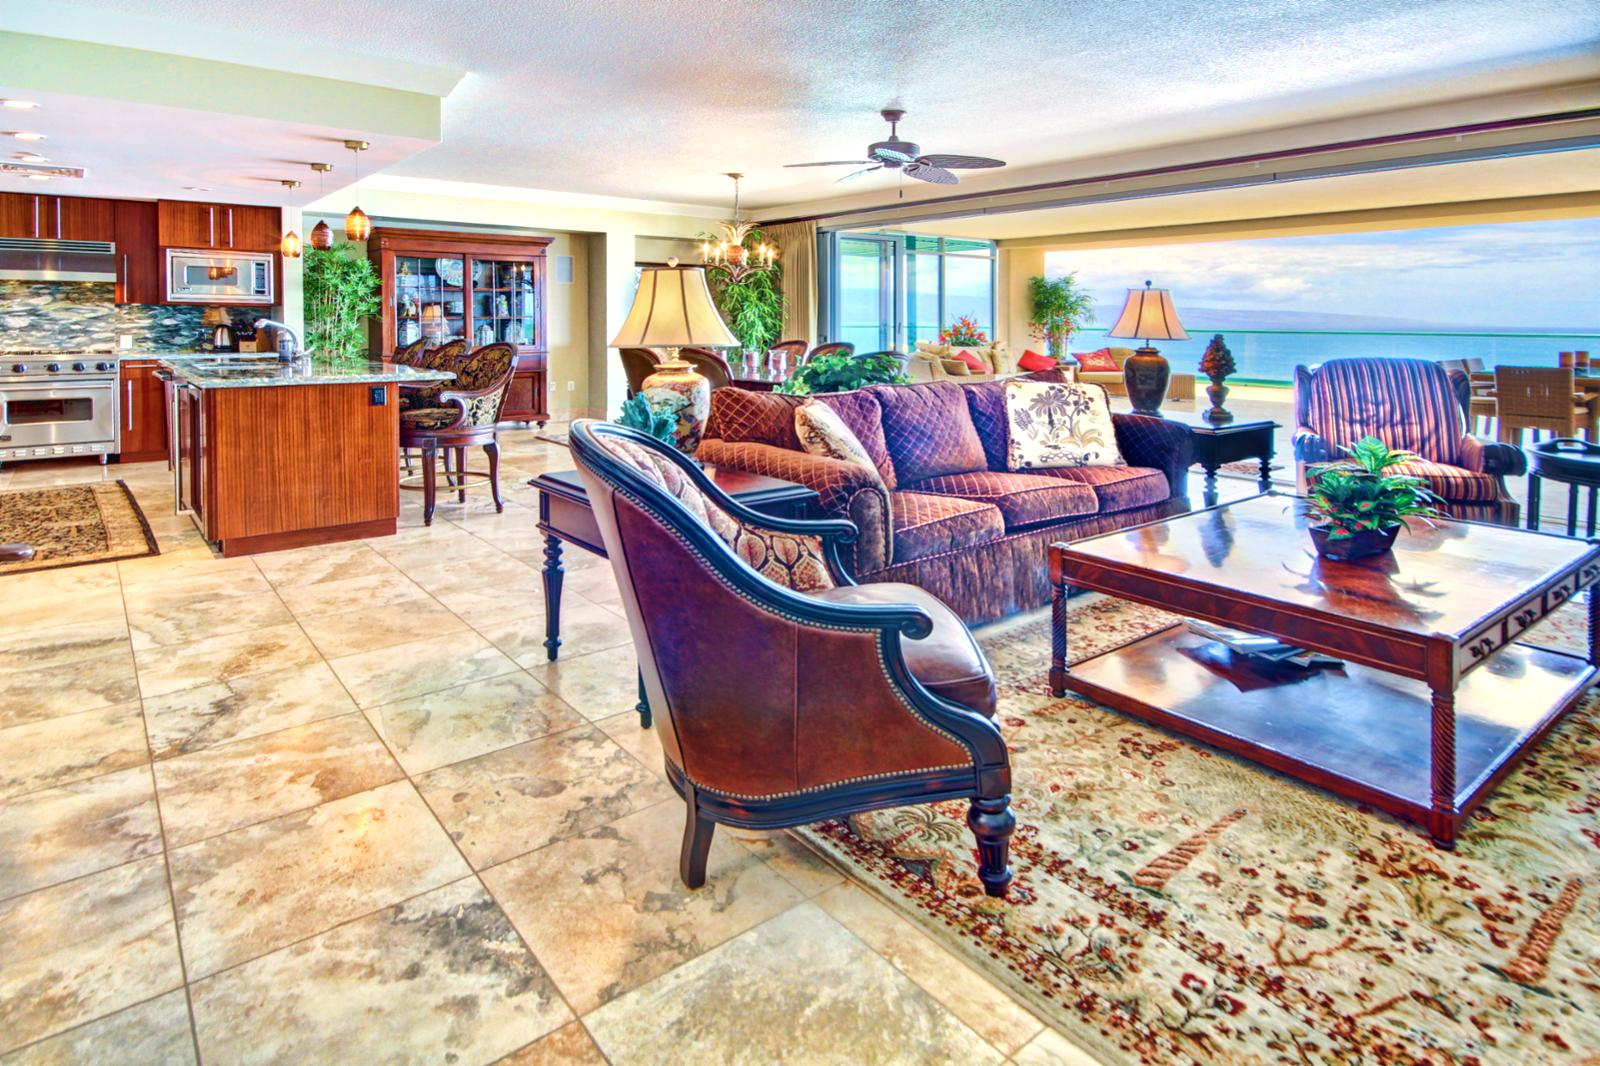 Looking across the living room you can see the great view you have from every angle in this luxury unit at Honua Kai Resort.